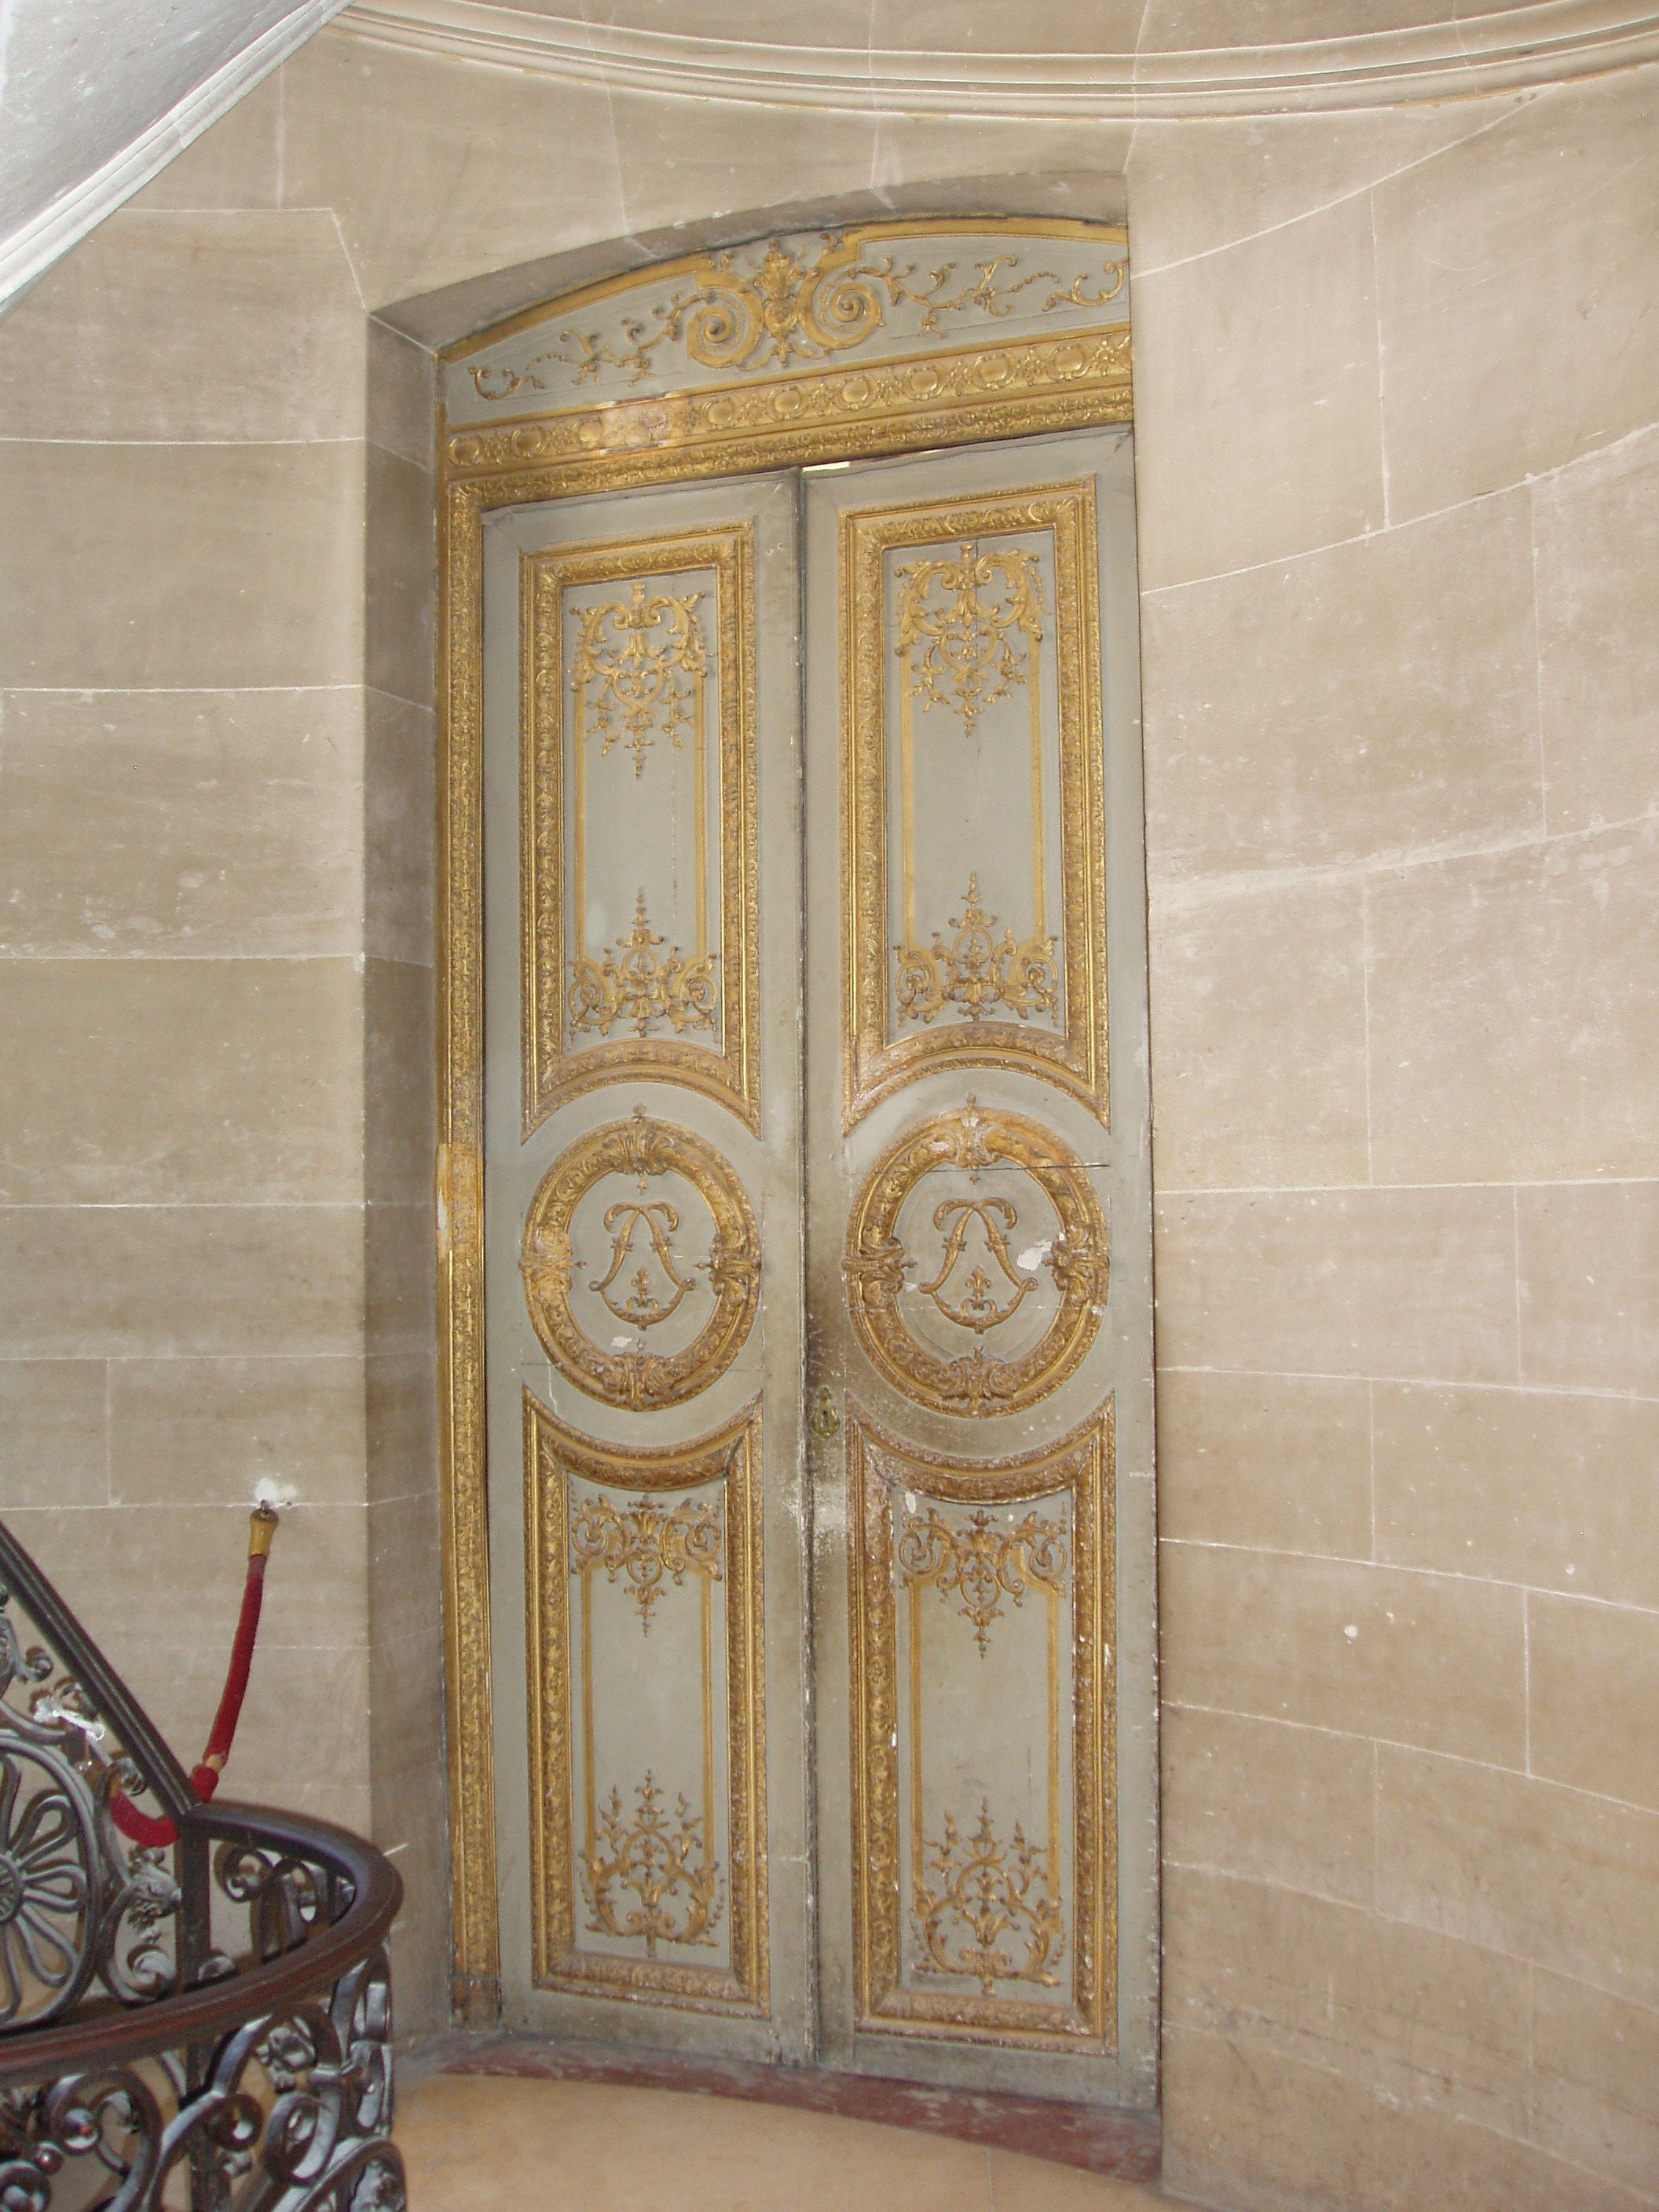 Versailles doors golden and gilded fit for a goddess #beagoddess & Versailles doors golden and gilded fit for a goddess #beagoddess ...